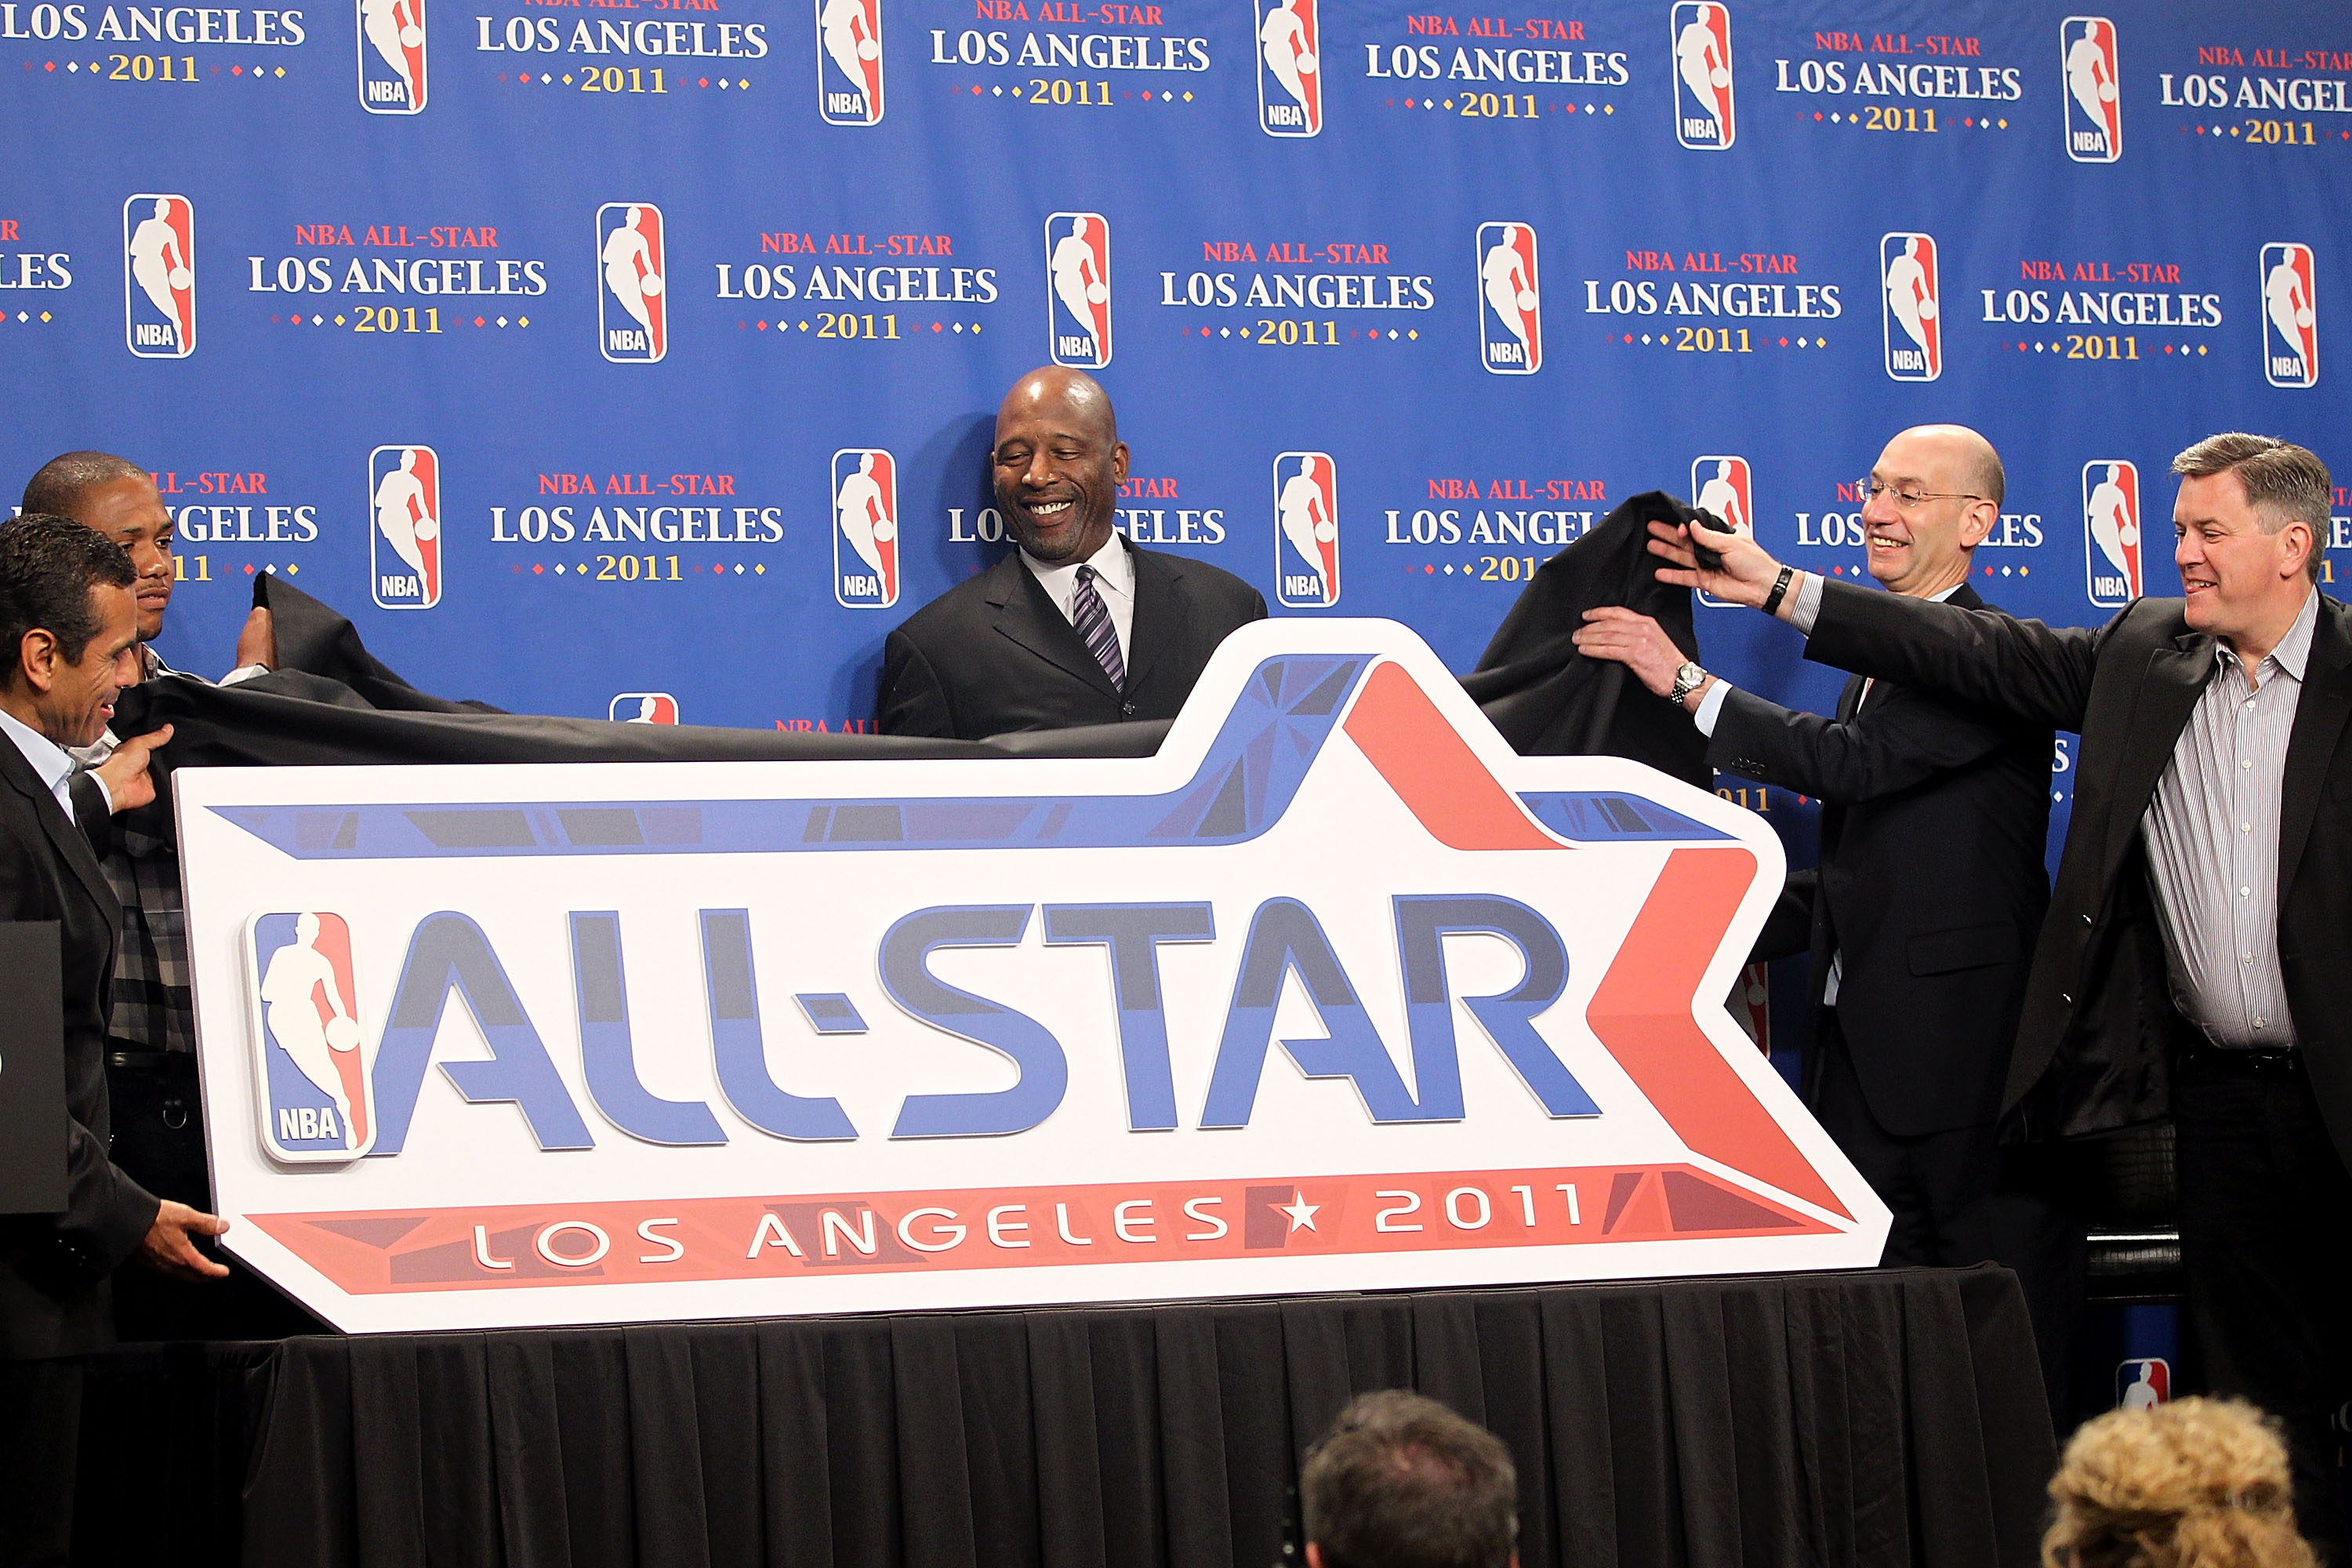 LOS ANGELES, CA - JUNE 06:  The 2011 NBA All-Star logo is unveiled by Los Angeles Mayor Antonio Villaraigosa, Eric Gordon of the Los Angeles Clippers NBA legend James Worthy, NBA deputy commissioner Adam Silver and AEG CEO Tim Leiweke before Game Two of t